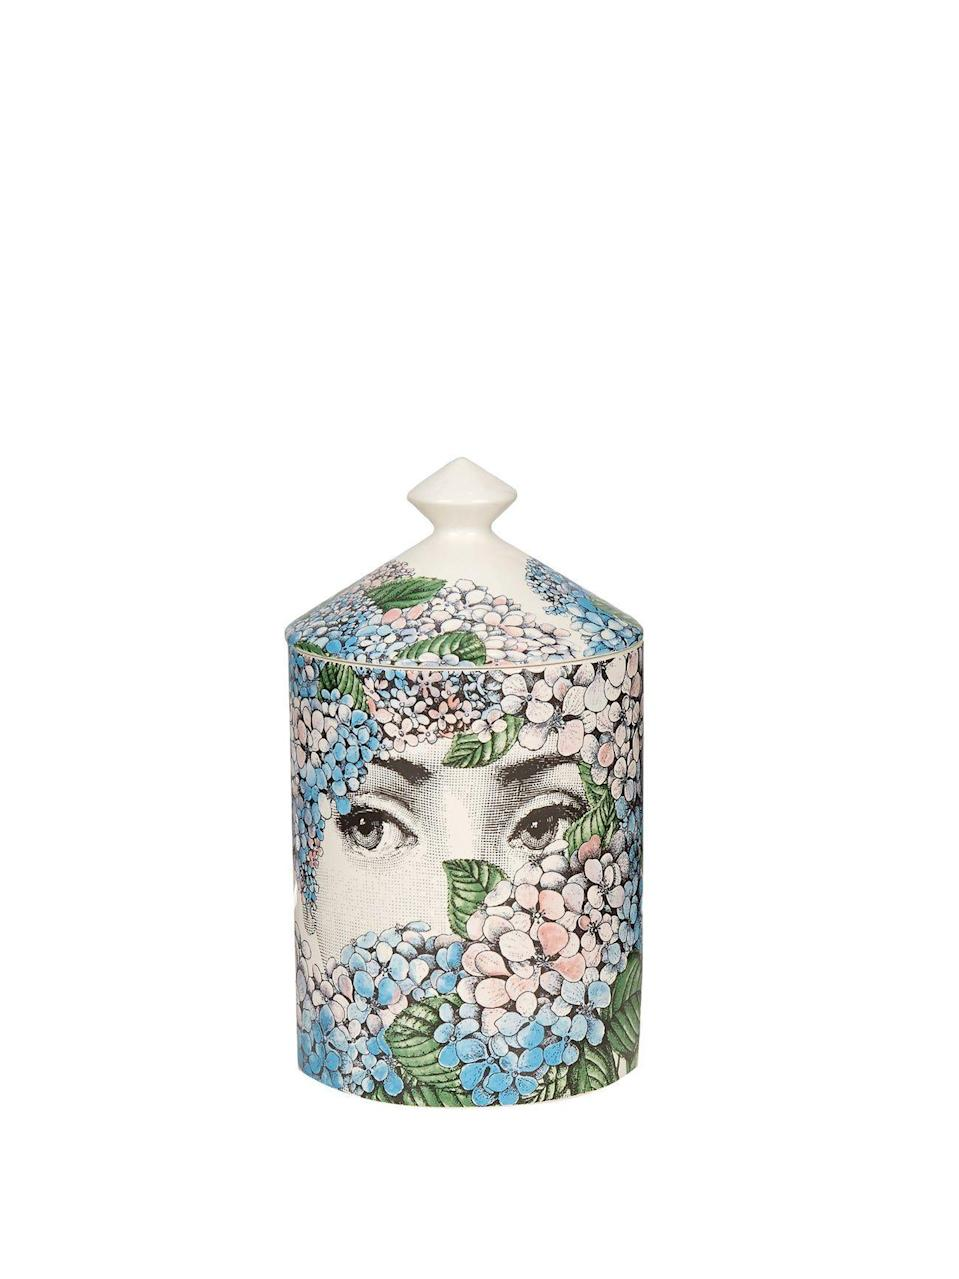 "<p><strong>Fornasetti</strong></p><p><strong>$165.00</strong></p><p><a href=""https://go.redirectingat.com?id=74968X1596630&url=https%3A%2F%2Fwww.matchesfashion.com%2Fus%2Fproducts%2F1347777%3Fcountry%3DUSA%26rffrid%3Dsem.Google.n%253Dg.cid%253D1775457770.aid%253D71956807867.k%253D.mty%253D.d%253Dc.adp%253D.cr%253D343452211173.tid%253Daud-429262818371%253Apla-605358118702.pid%253D1347777000001.ppid%253D605358118702.lpm%253D9012934.adty%253Dpla.prl%253Den%26gclid%3DCj0KCQiA-aGCBhCwARIsAHDl5x_nFE7azvSF9LnjJlvlTRu8VFM6BPZGot2xxkv6Gi_4HMMjdlolBeMaAi50EALw_wcB%26gclsrc%3Daw.ds&sref=https%3A%2F%2Fwww.redbookmag.com%2Flife%2Fg36061311%2Funique-wedding-gift-ideas%2F"" rel=""nofollow noopener"" target=""_blank"" data-ylk=""slk:SHOP NOW"" class=""link rapid-noclick-resp"">SHOP NOW</a></p><p>These beautiful options by Italian painter and engraver, Piero Fornasetti, have unique and whimsical designs glazed onto their ceramic vessels. Not only is the candle hand poured with 100% vegetal wax in Italy, but once it's burned away, the jar remains a beautiful decoration for the couple's home.</p>"